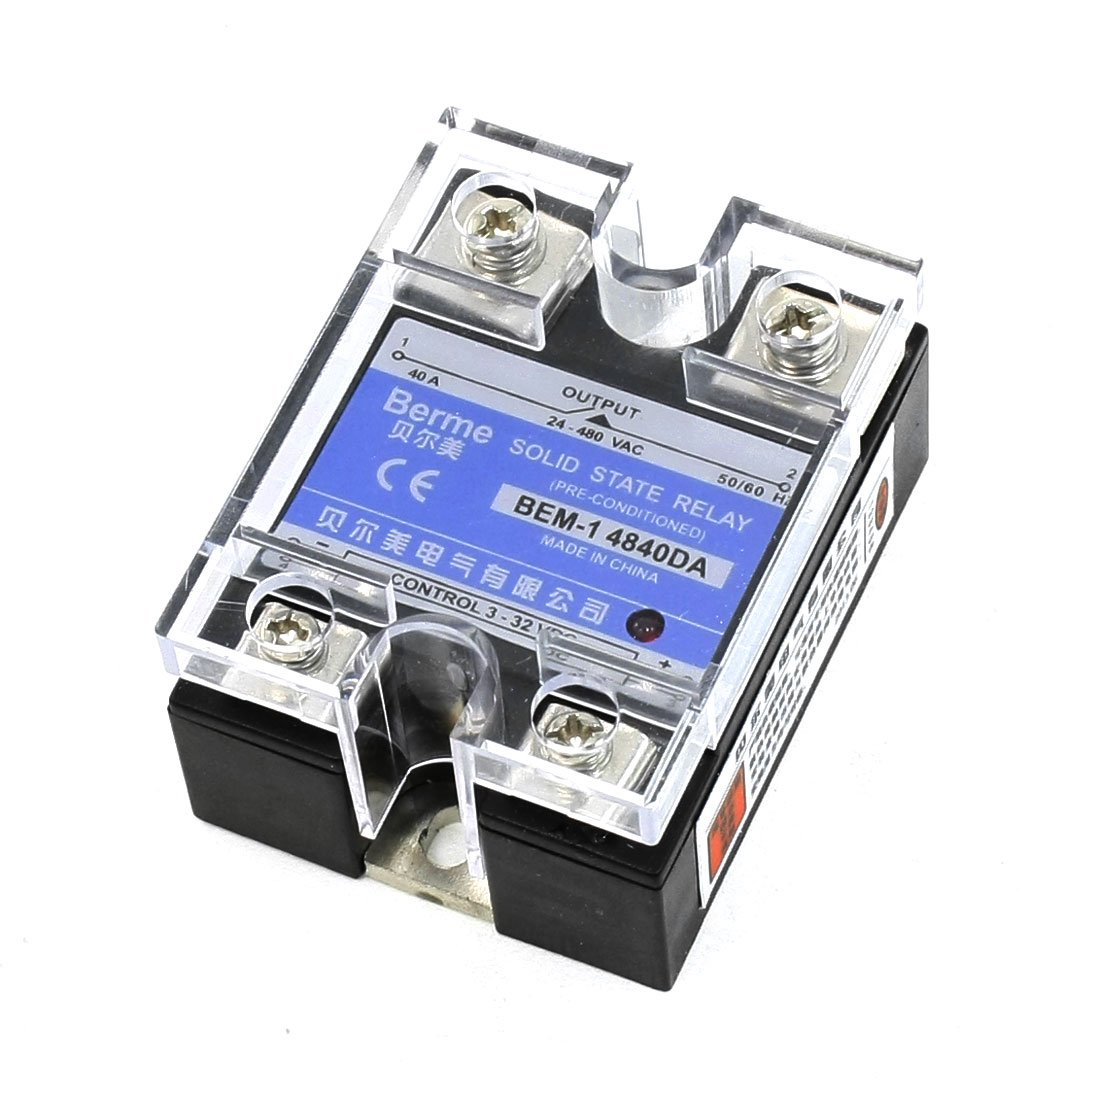 IMC Hot 24-480V AC DC to 3-32VDC Output Single Phase SSR Solid State Relay 40A 20dd ssr control 3 32vdc output 5 220vdc single phase dc solid state relay 20a yhd2220d